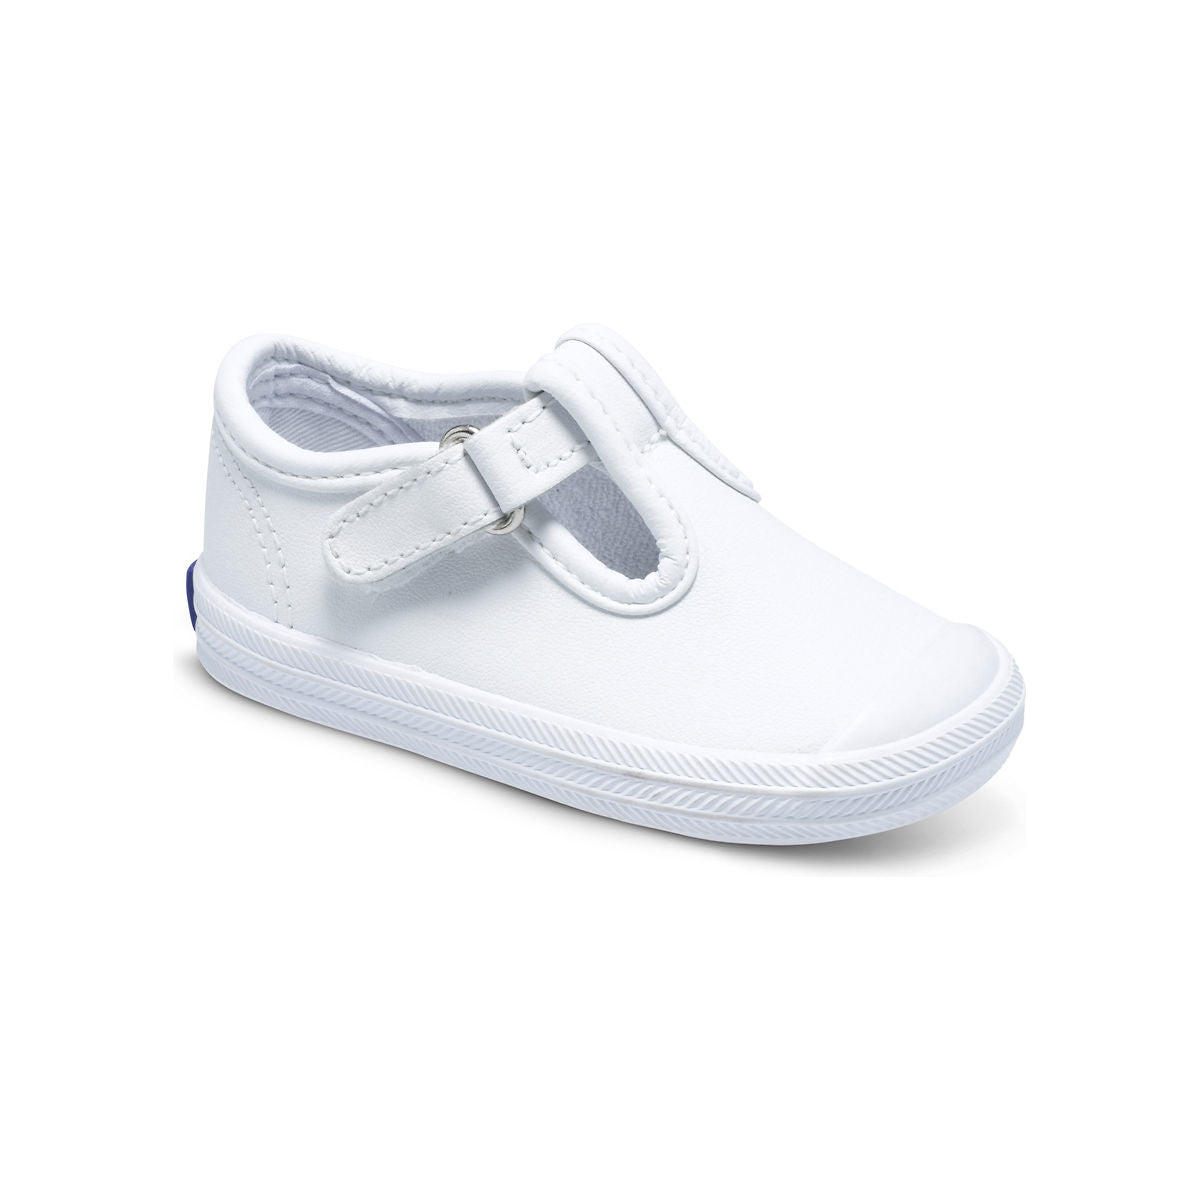 Champion T-Strap - White Leather by Keds - Ponseti's Shoes